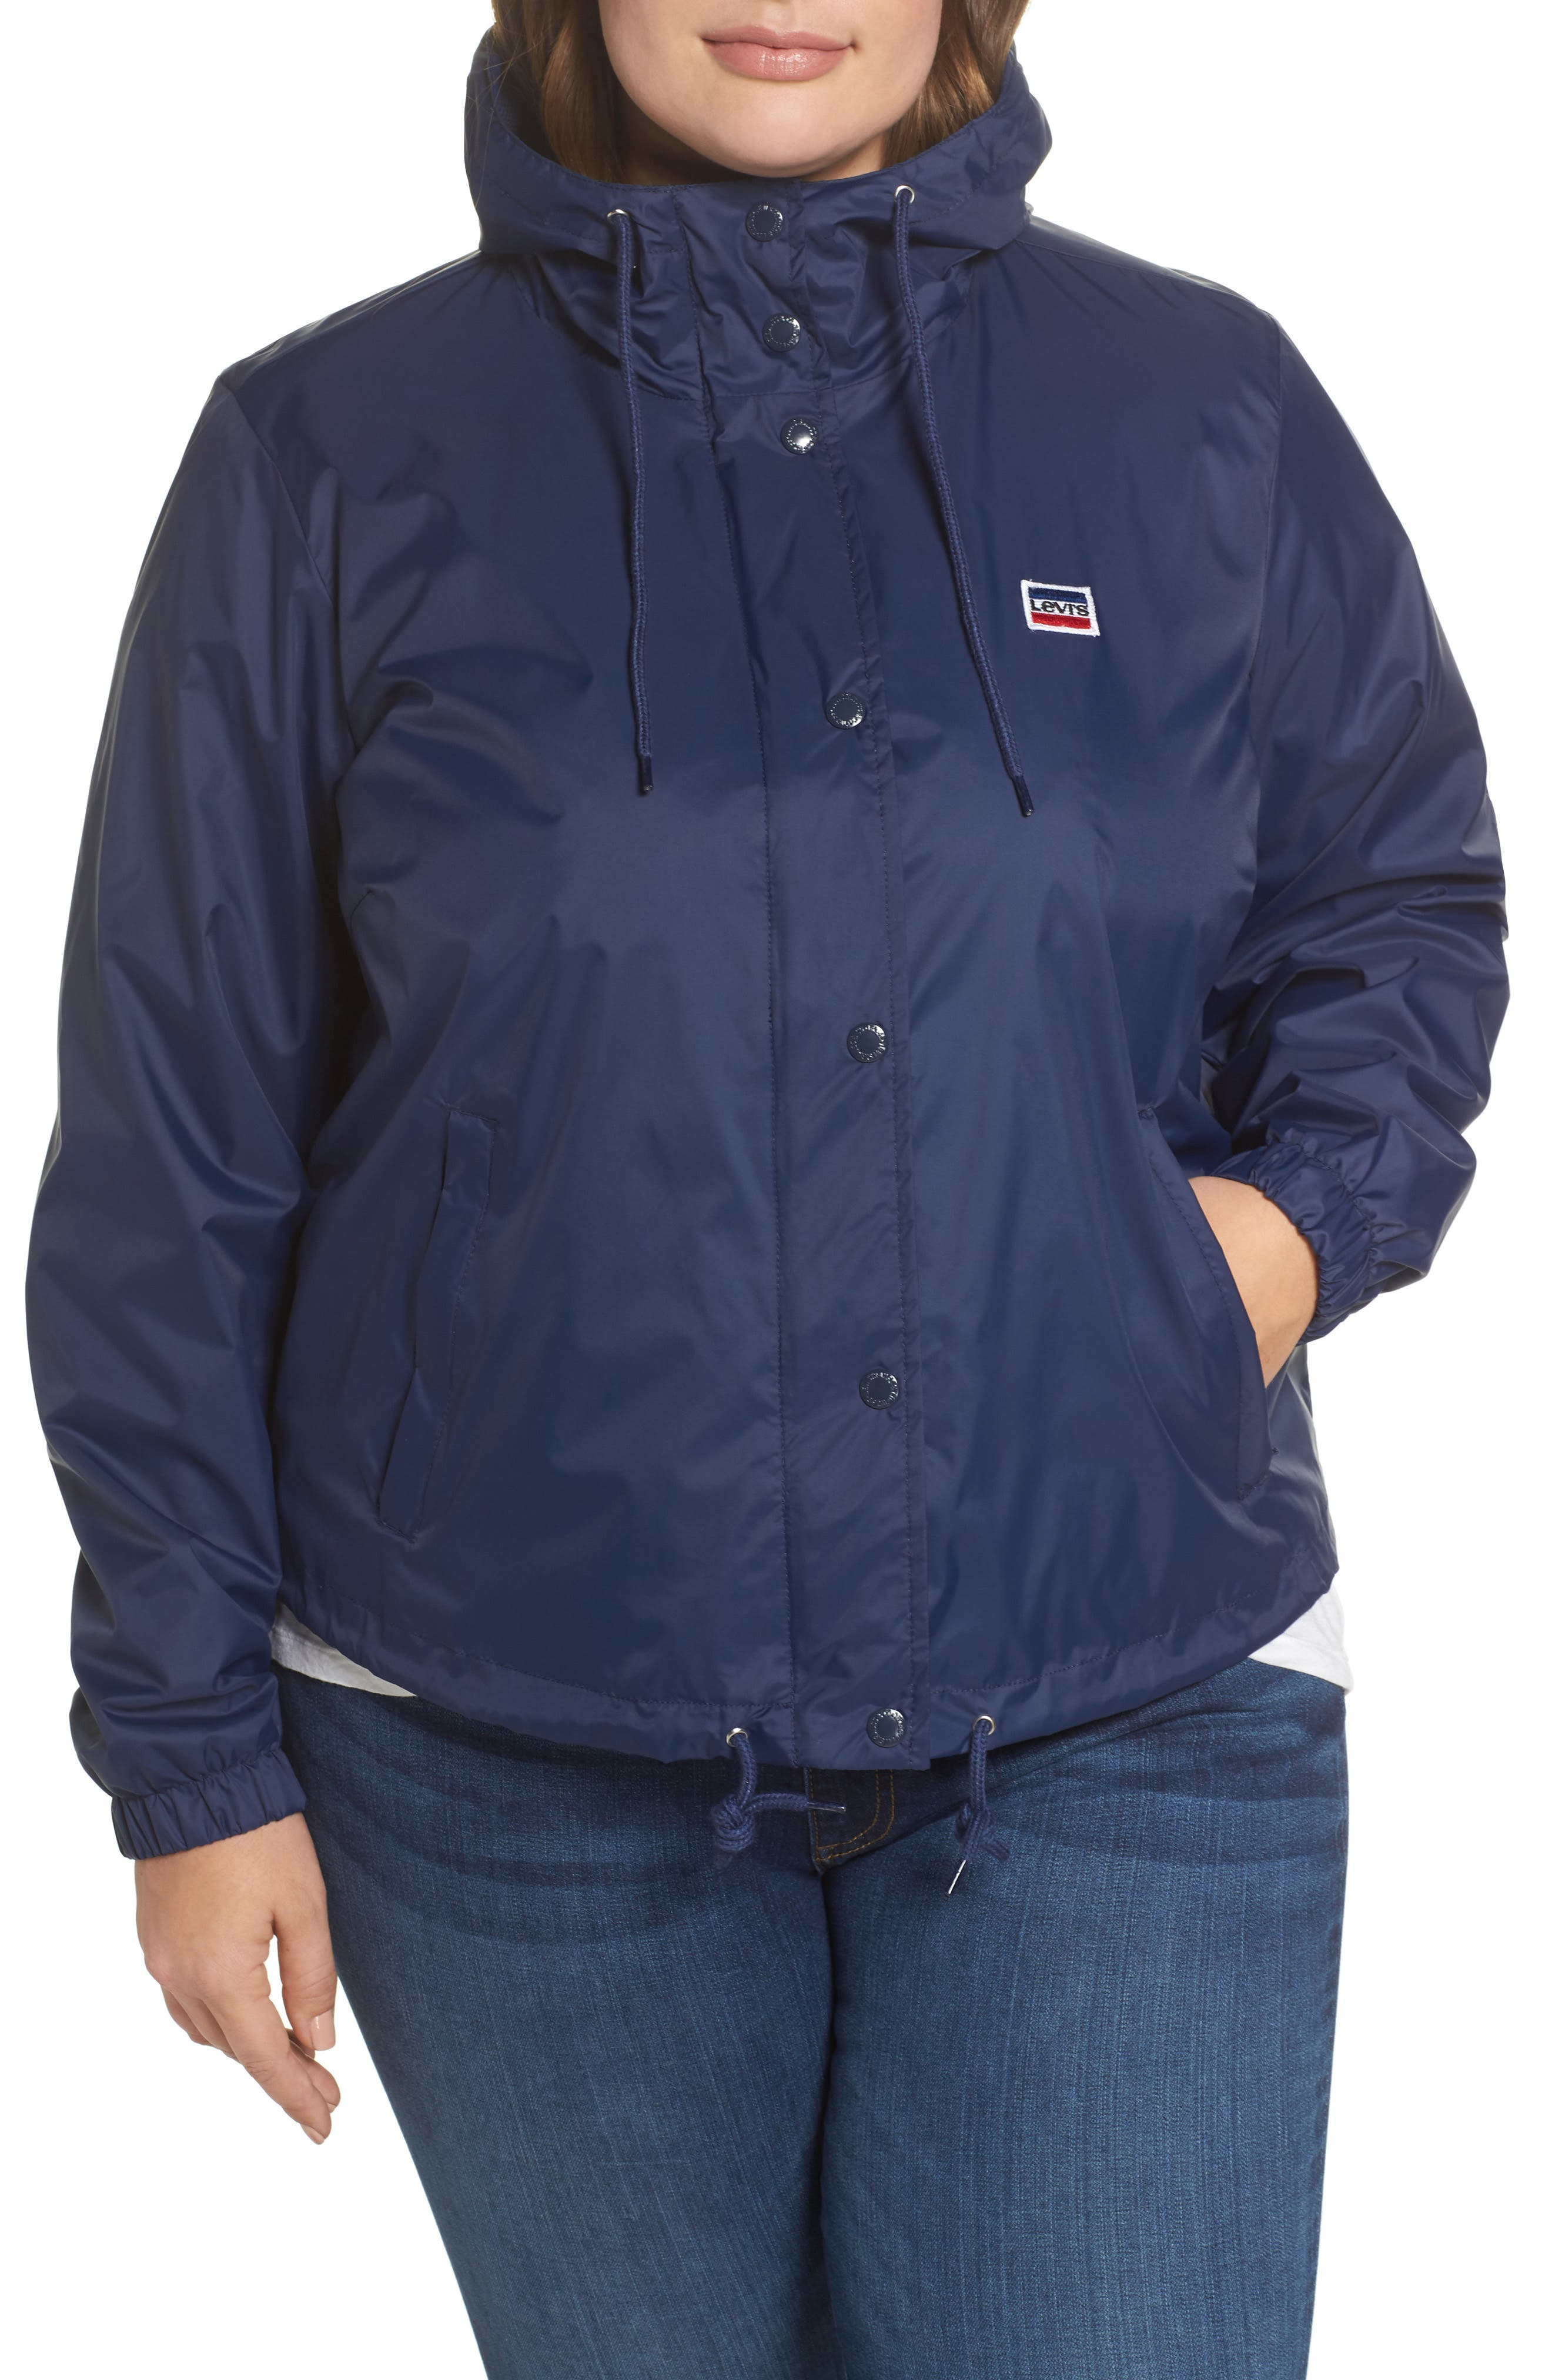 Retro Hooded Coach's Jacket,                             Alternate thumbnail 14, color,